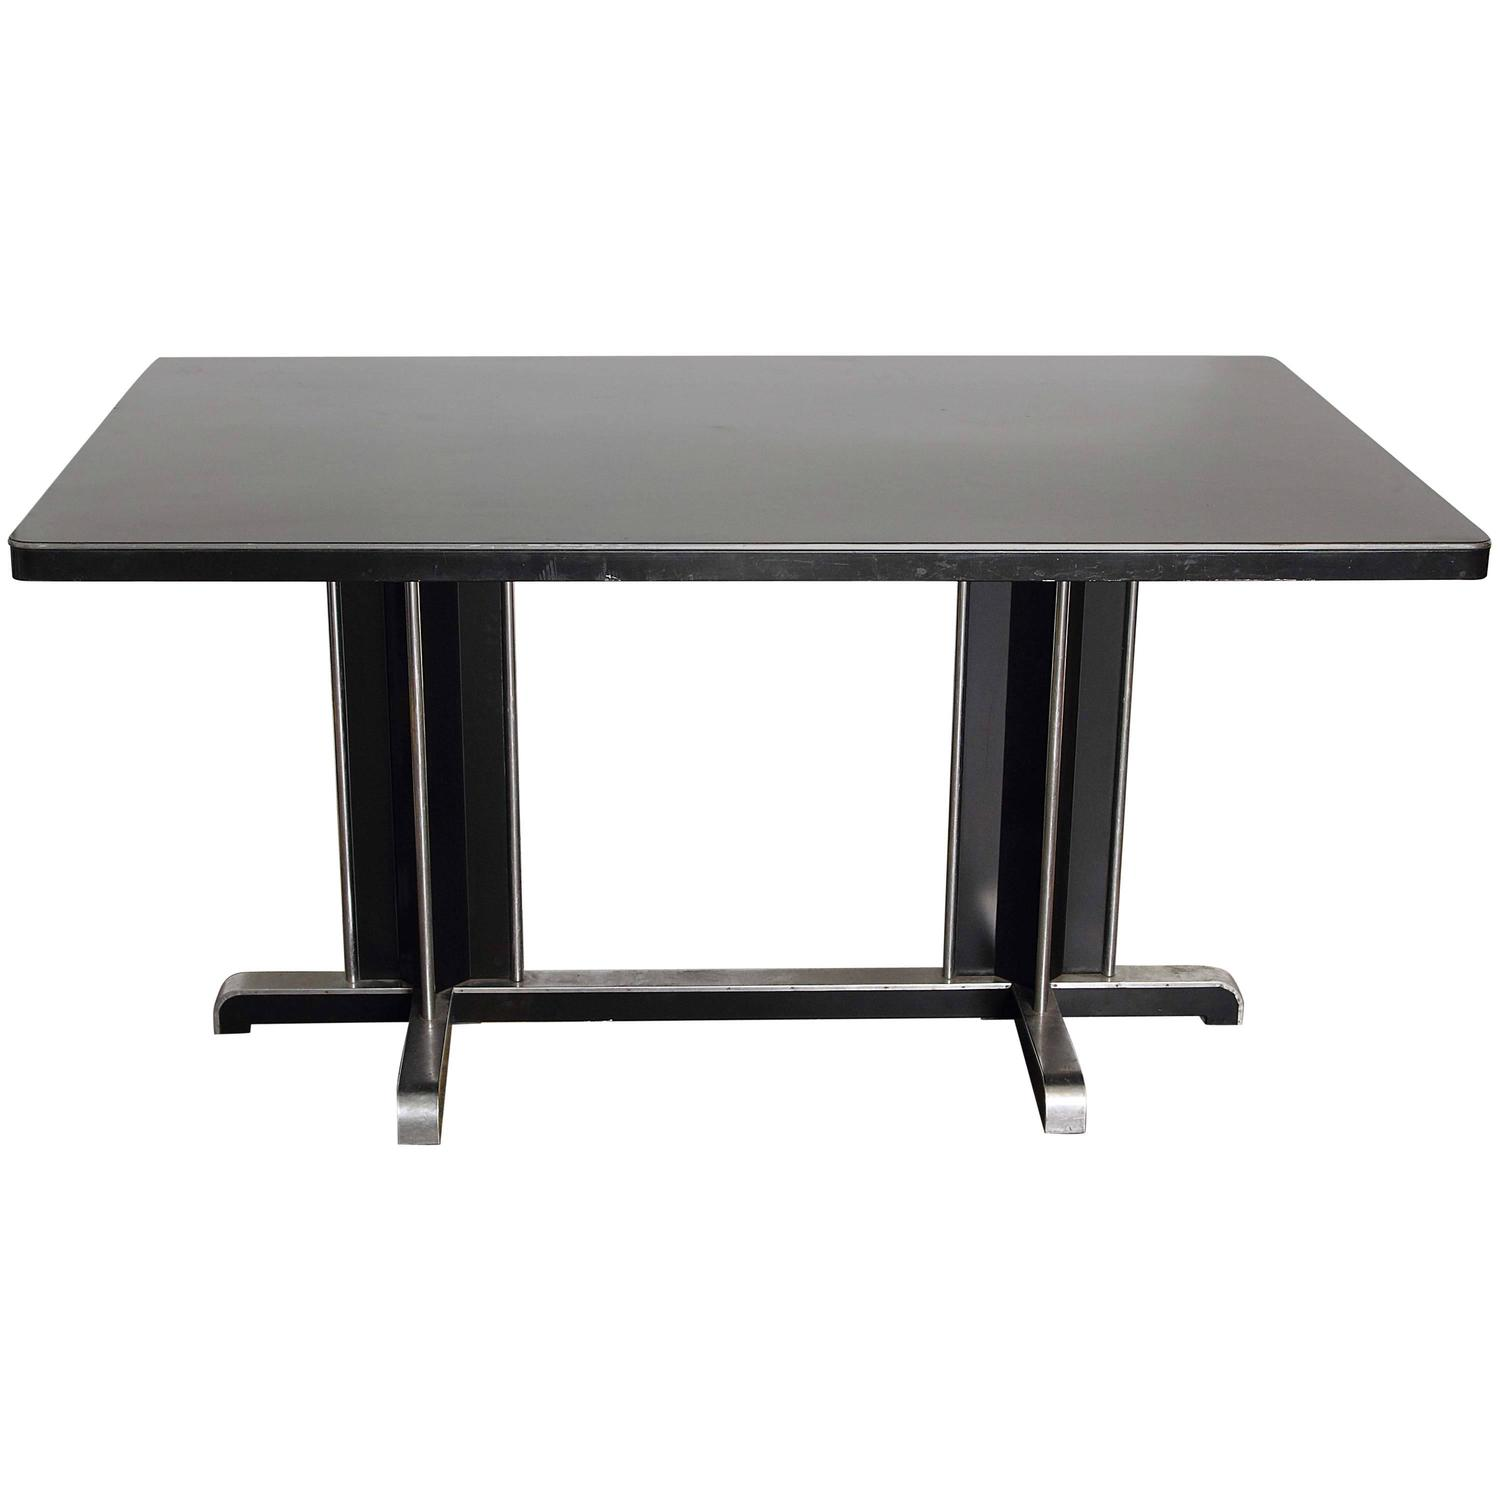 Uncommon Gilbert Rohde Attribution Dining Table For